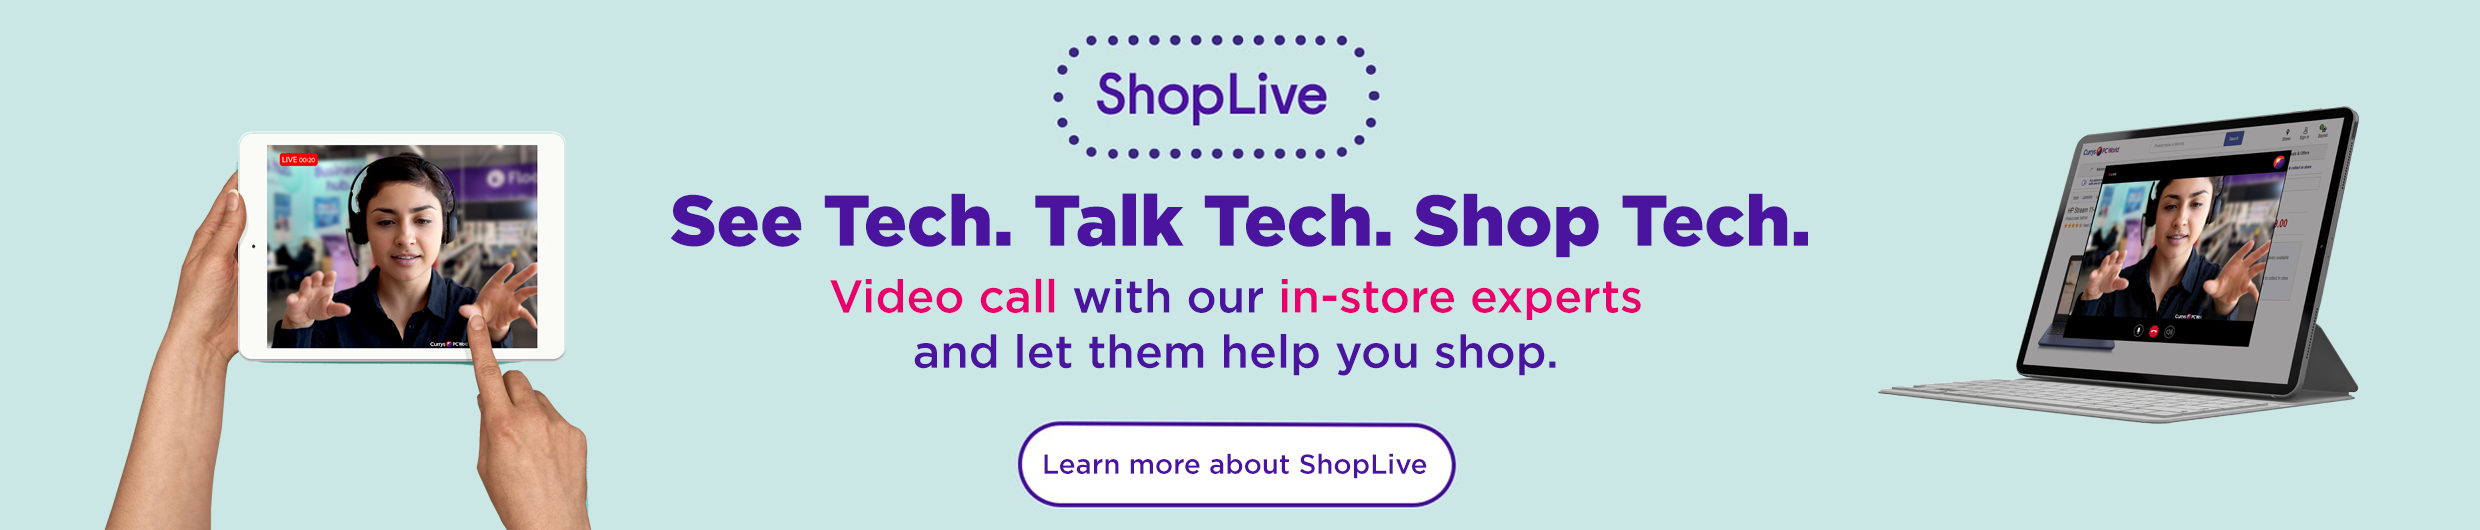 ShopLive - Learn More